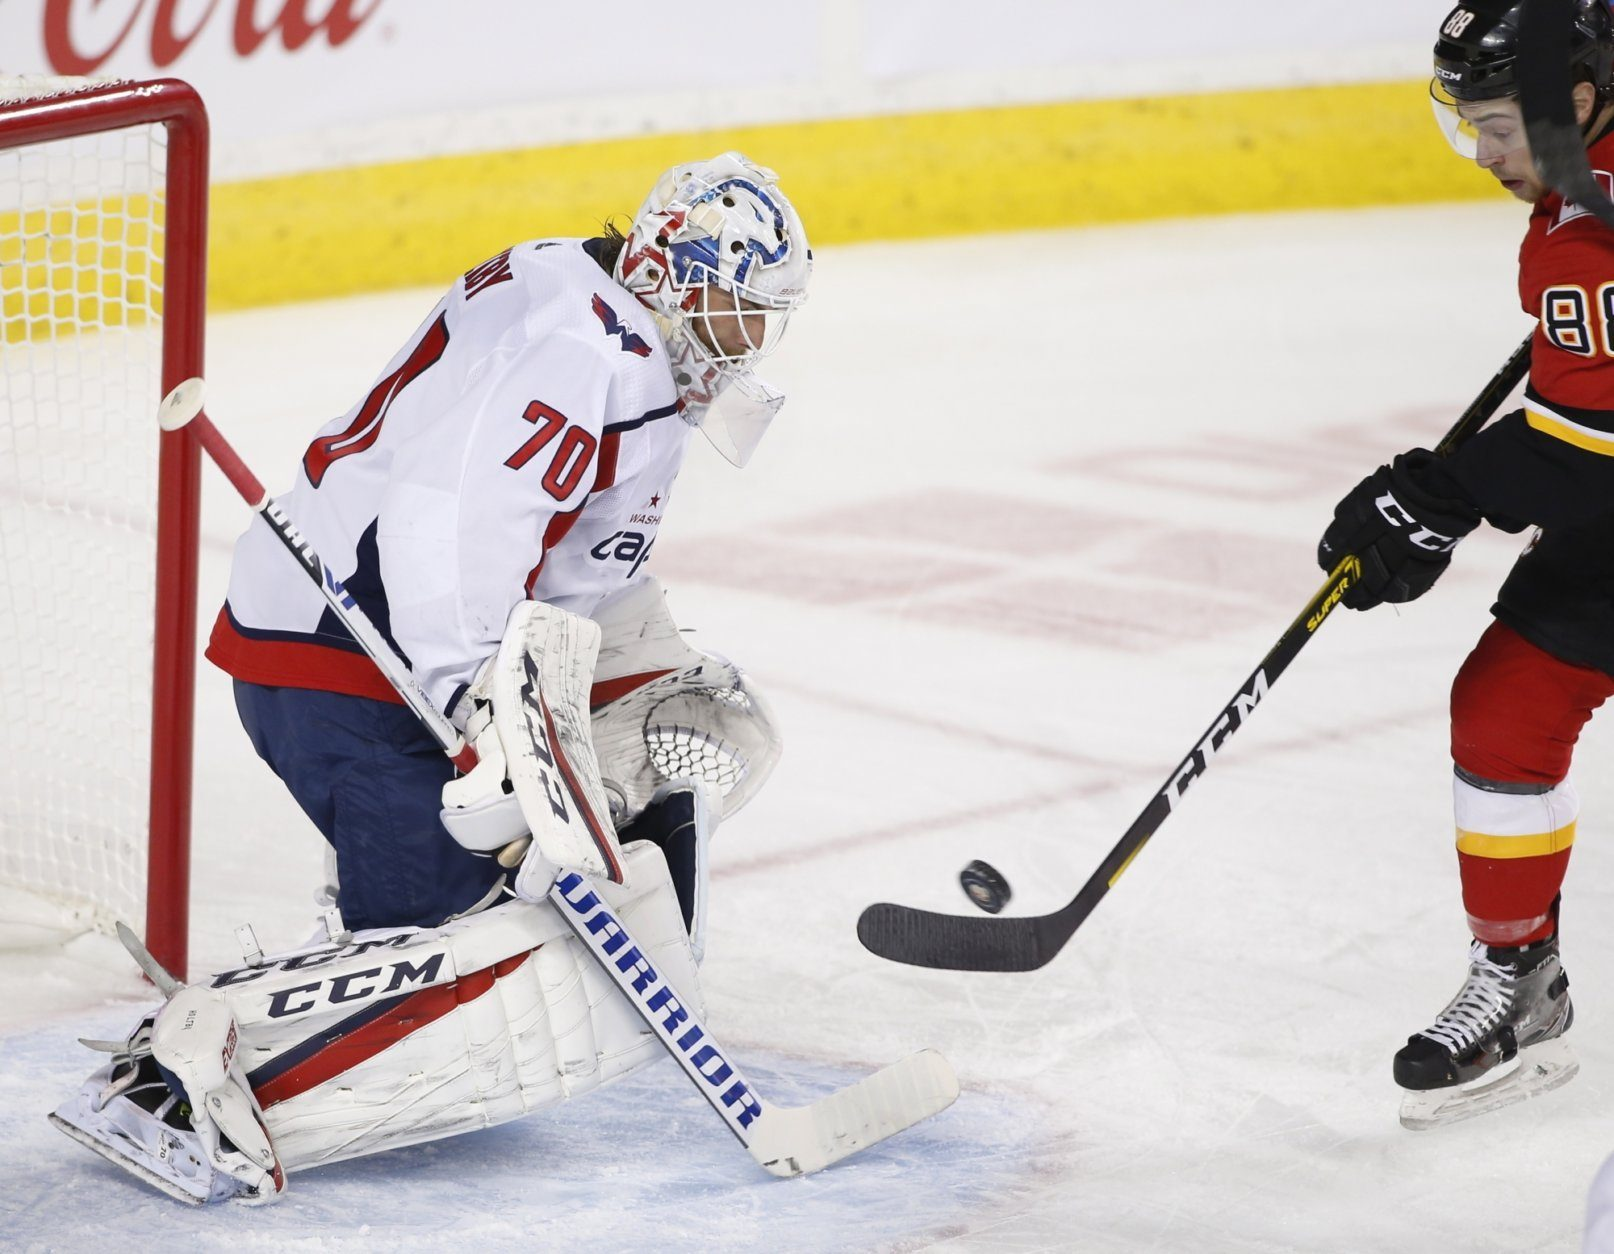 Washington Capitals goalie Brayden Holtby makes a save against Calgary Flames' Andrew Mangiapane during the first period of an NHL hockey game Tuesday, Oct. 22, 2019, in Calgary, Alberta. (Larry MacDougal/The Canadian Press via AP)